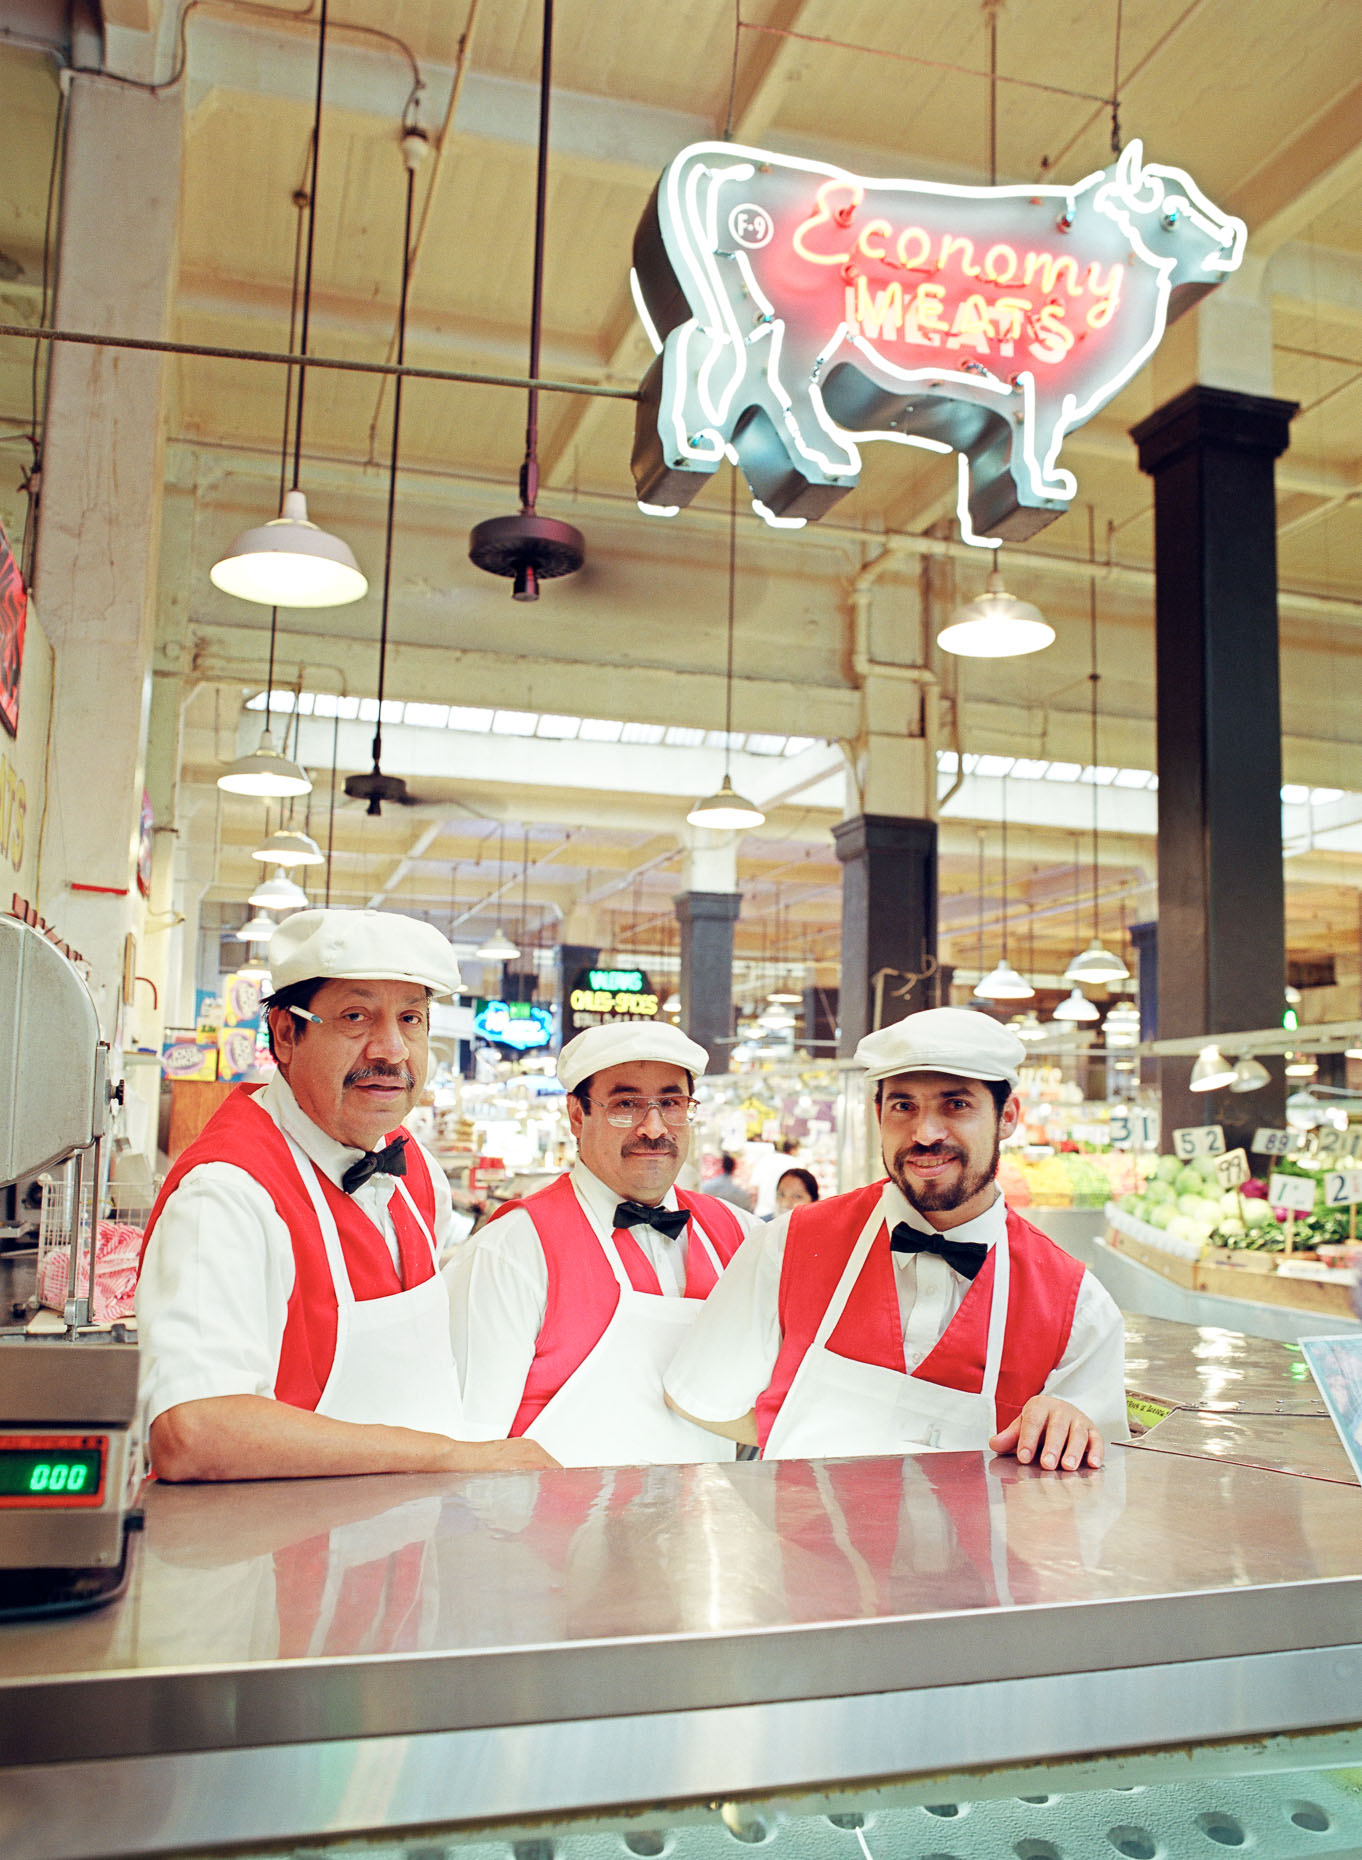 Meat cutters butchers with aprons posing behind counter at ECONOMY MEATS in Grand Central Market in downtown Los Angeles by David Zaitz